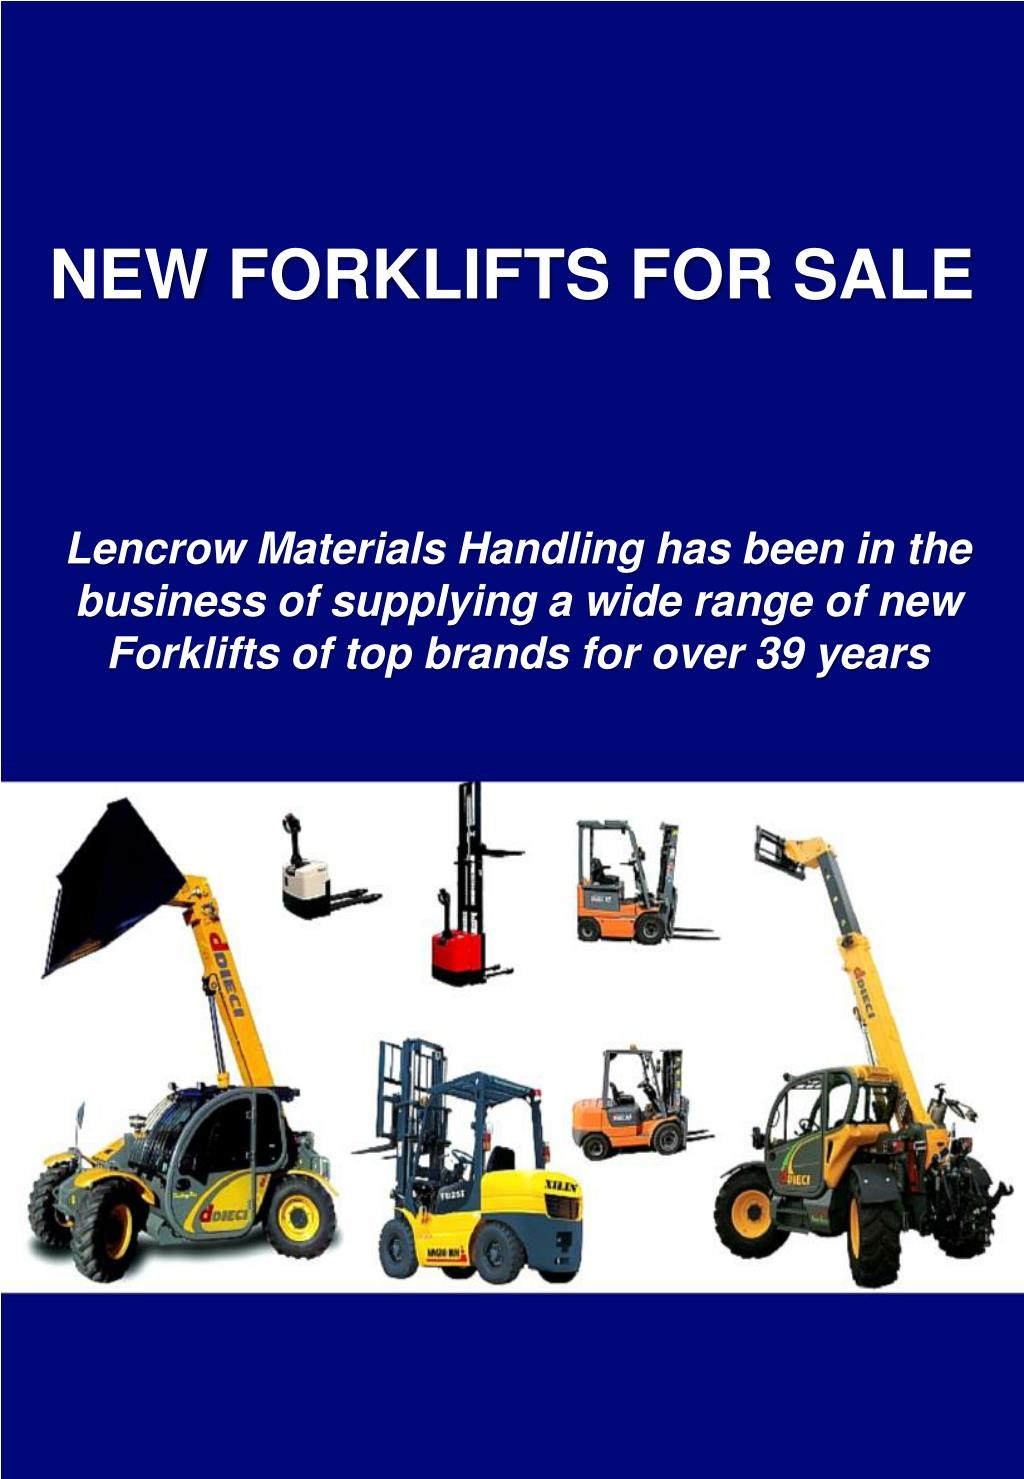 PPT - New Forklifts for Sale in Australia from Lencrow